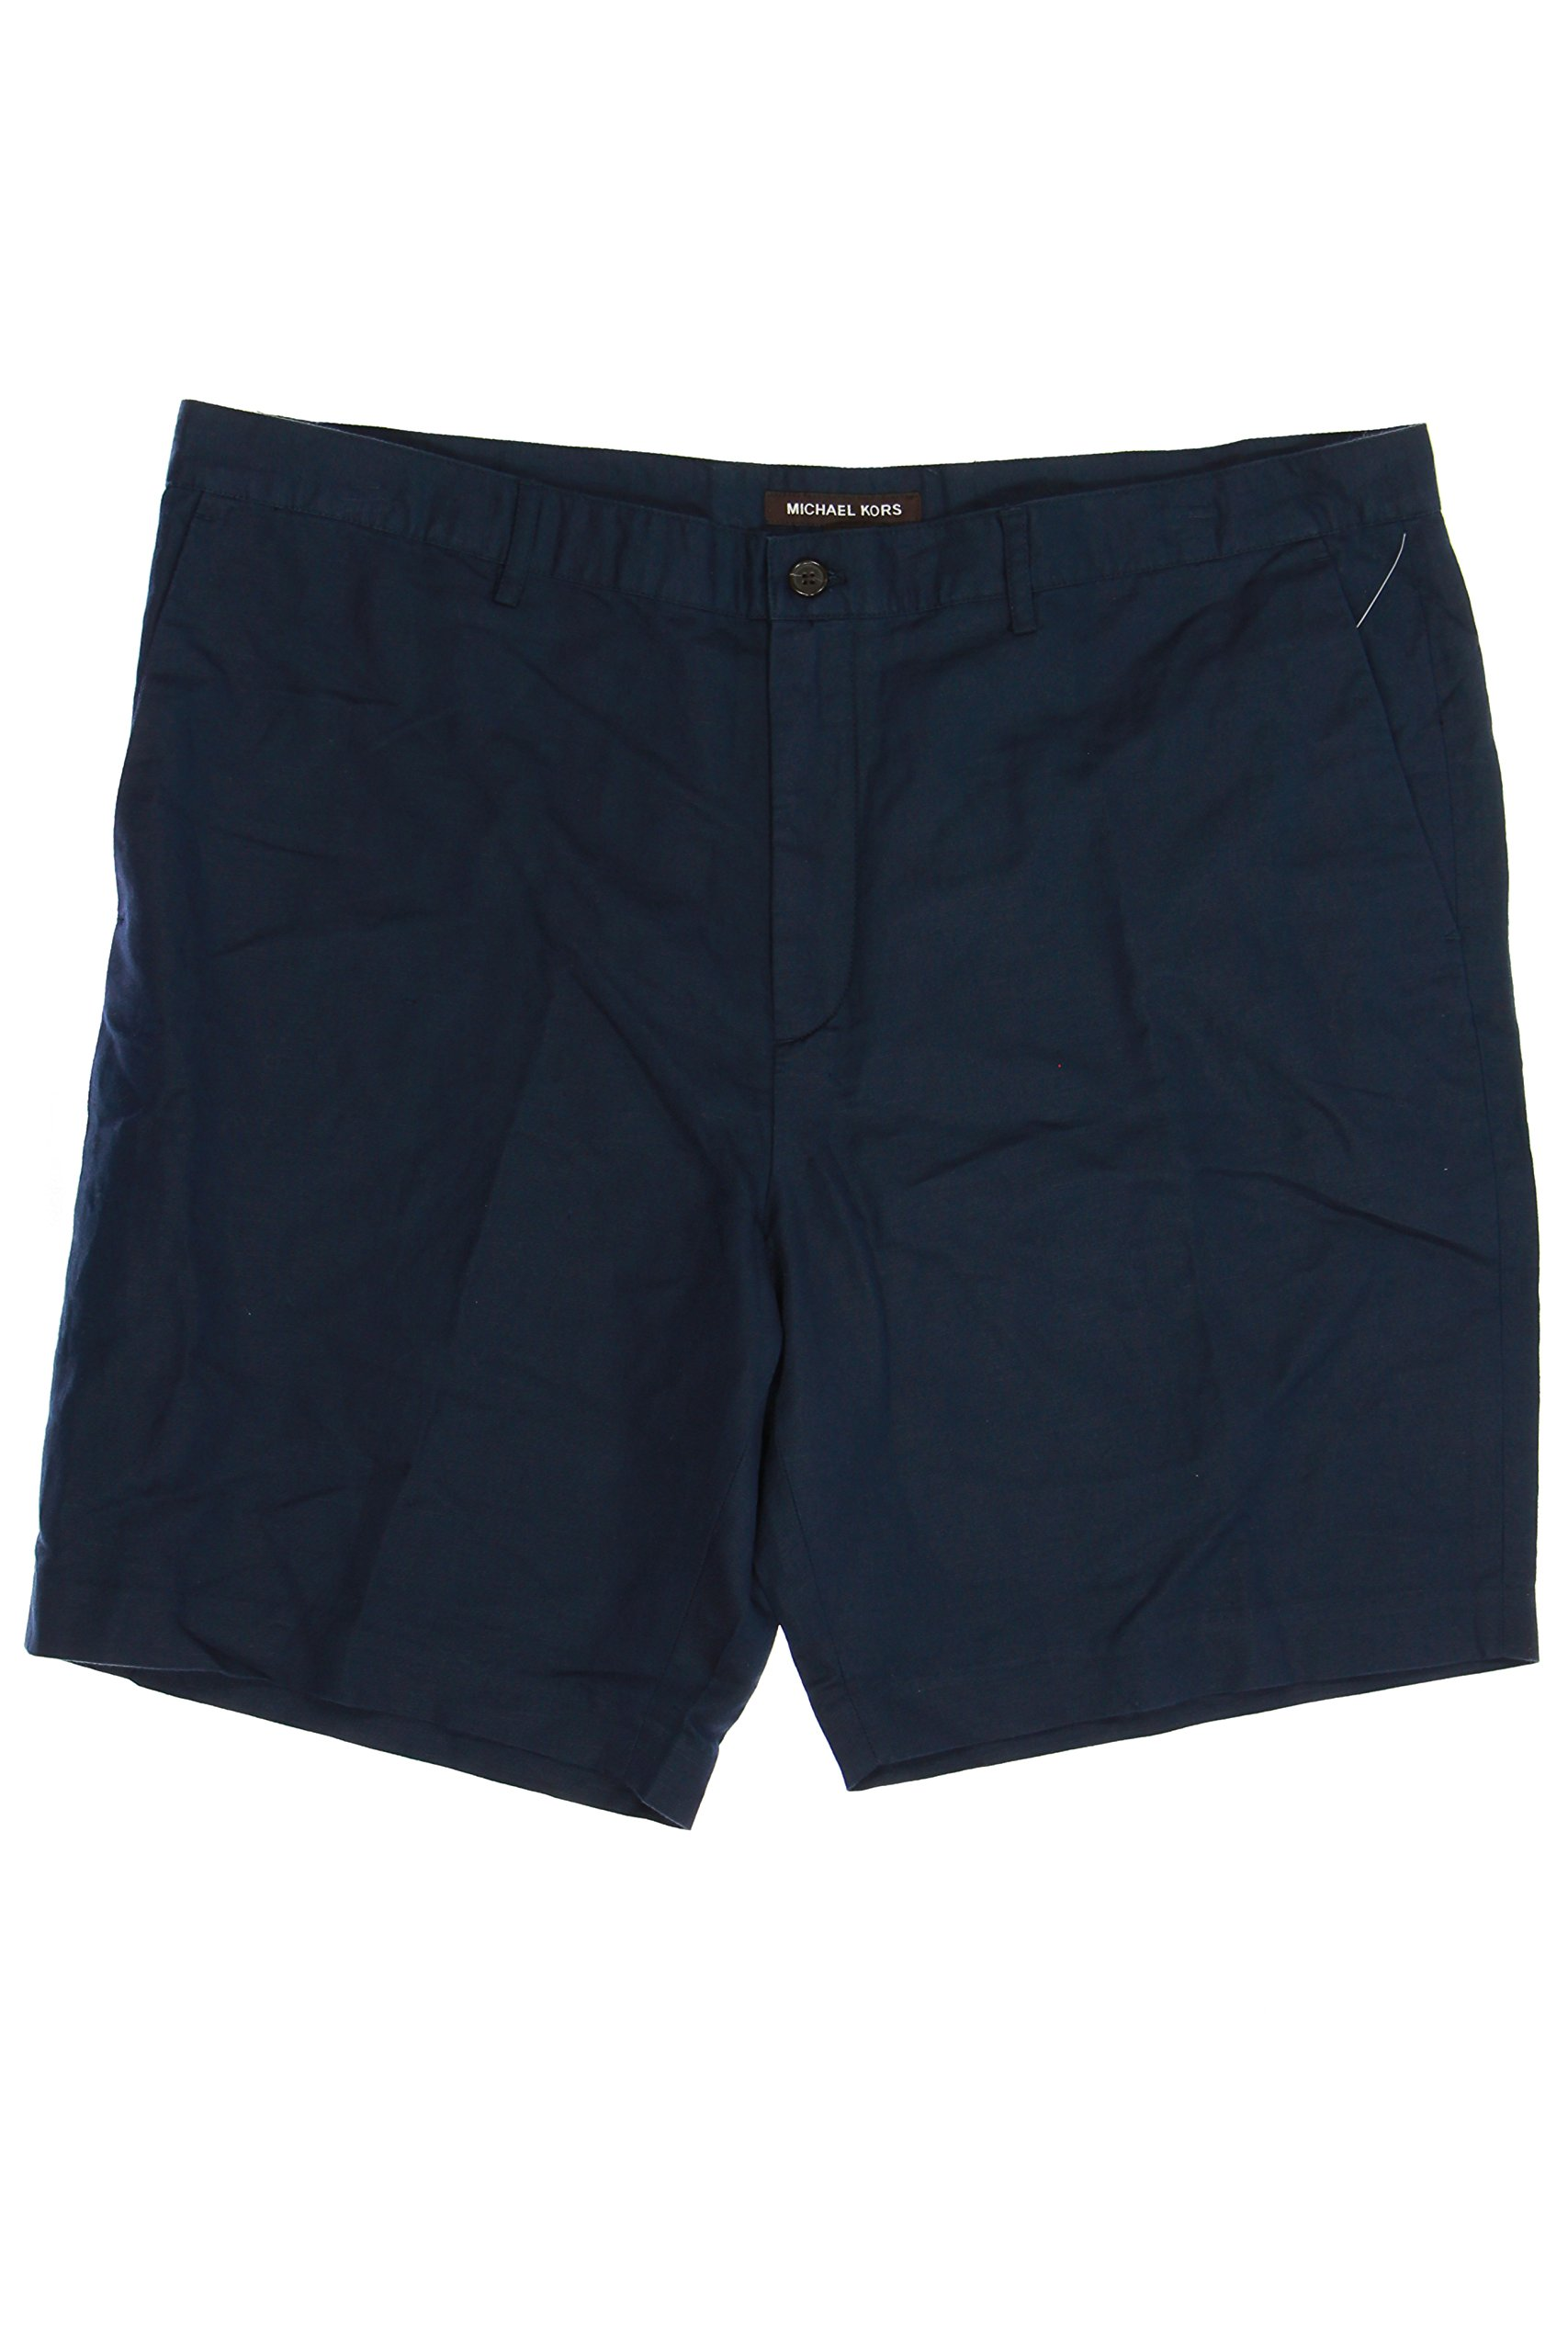 Michael Kors Flat Front Walking Shorts (38, Blue) by Michael Kors